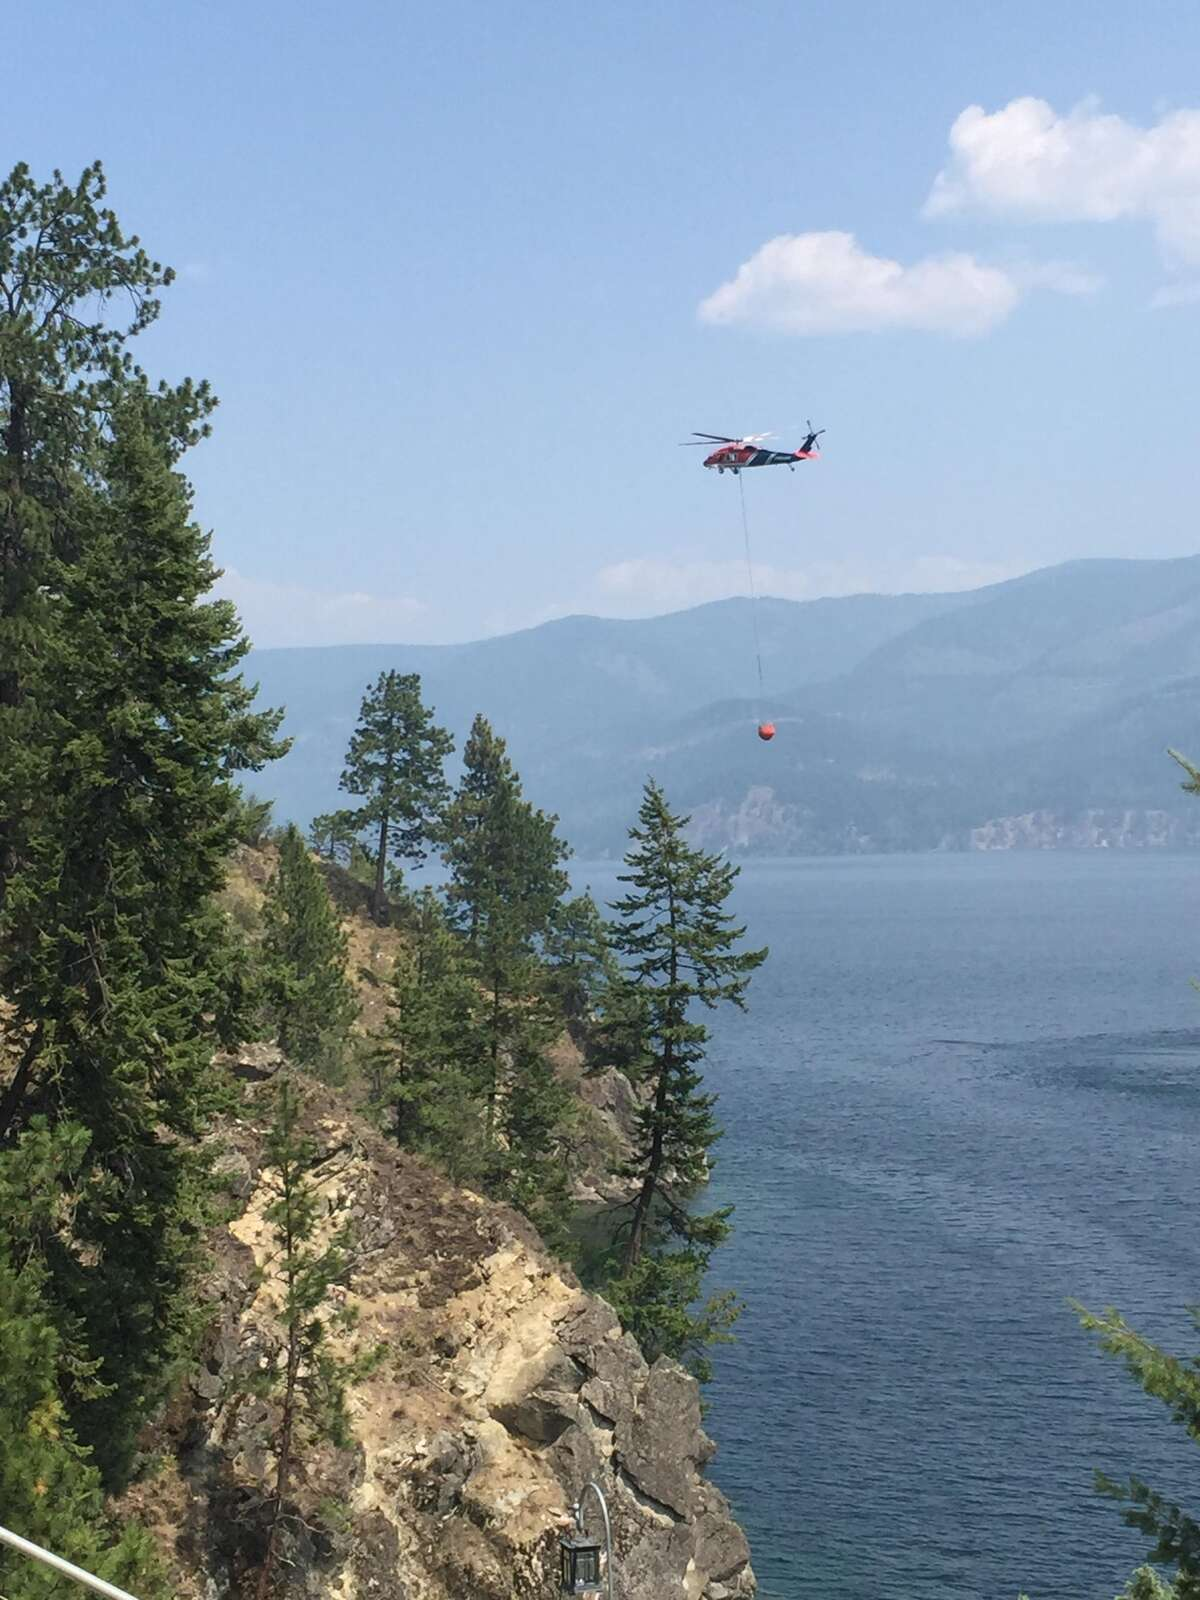 Cape Horn Fire: This fire in Idaho's panhandle is 100 percent contained but still burning across 1,326 acres near the south end of Lake Pend Oreille. The cause is still under investigation and 144 firefighters are working to monitor and maintain containment of the fire.